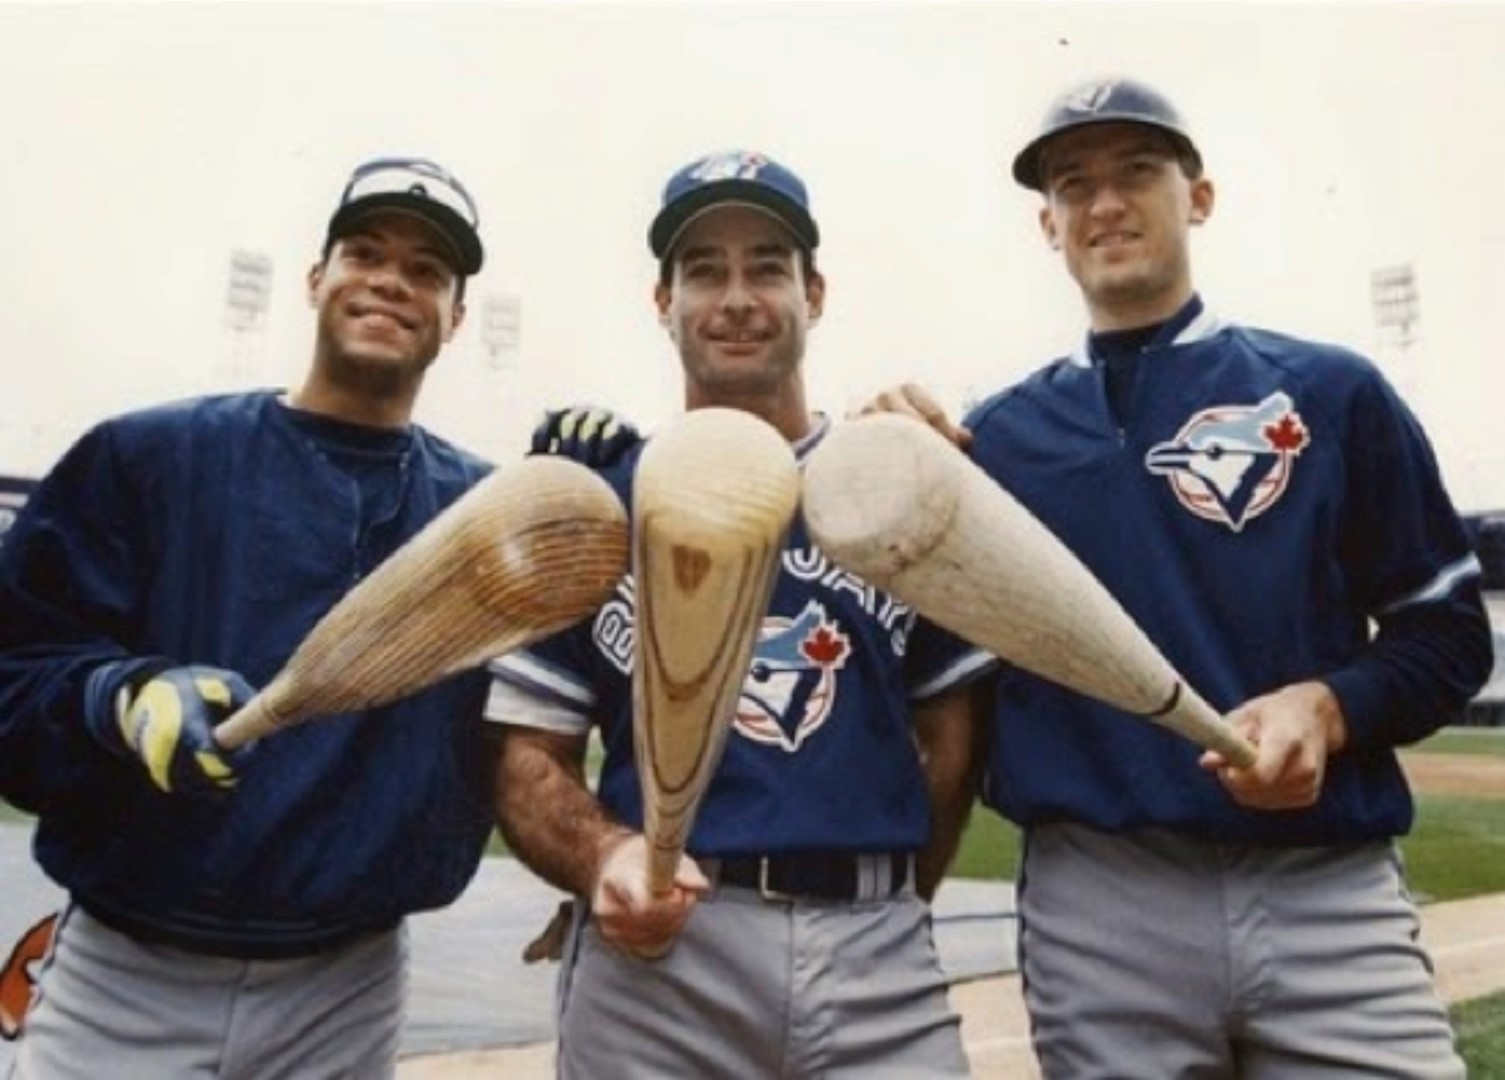 Hal of Famers Robbie Alomar and Paul Molitor finished . behind teammate John Olerud in the 1993 AL batting race. The 1993 Blue Jays ran the bases and hit for average and the 2015 Jays mashed. The better offensive team?.